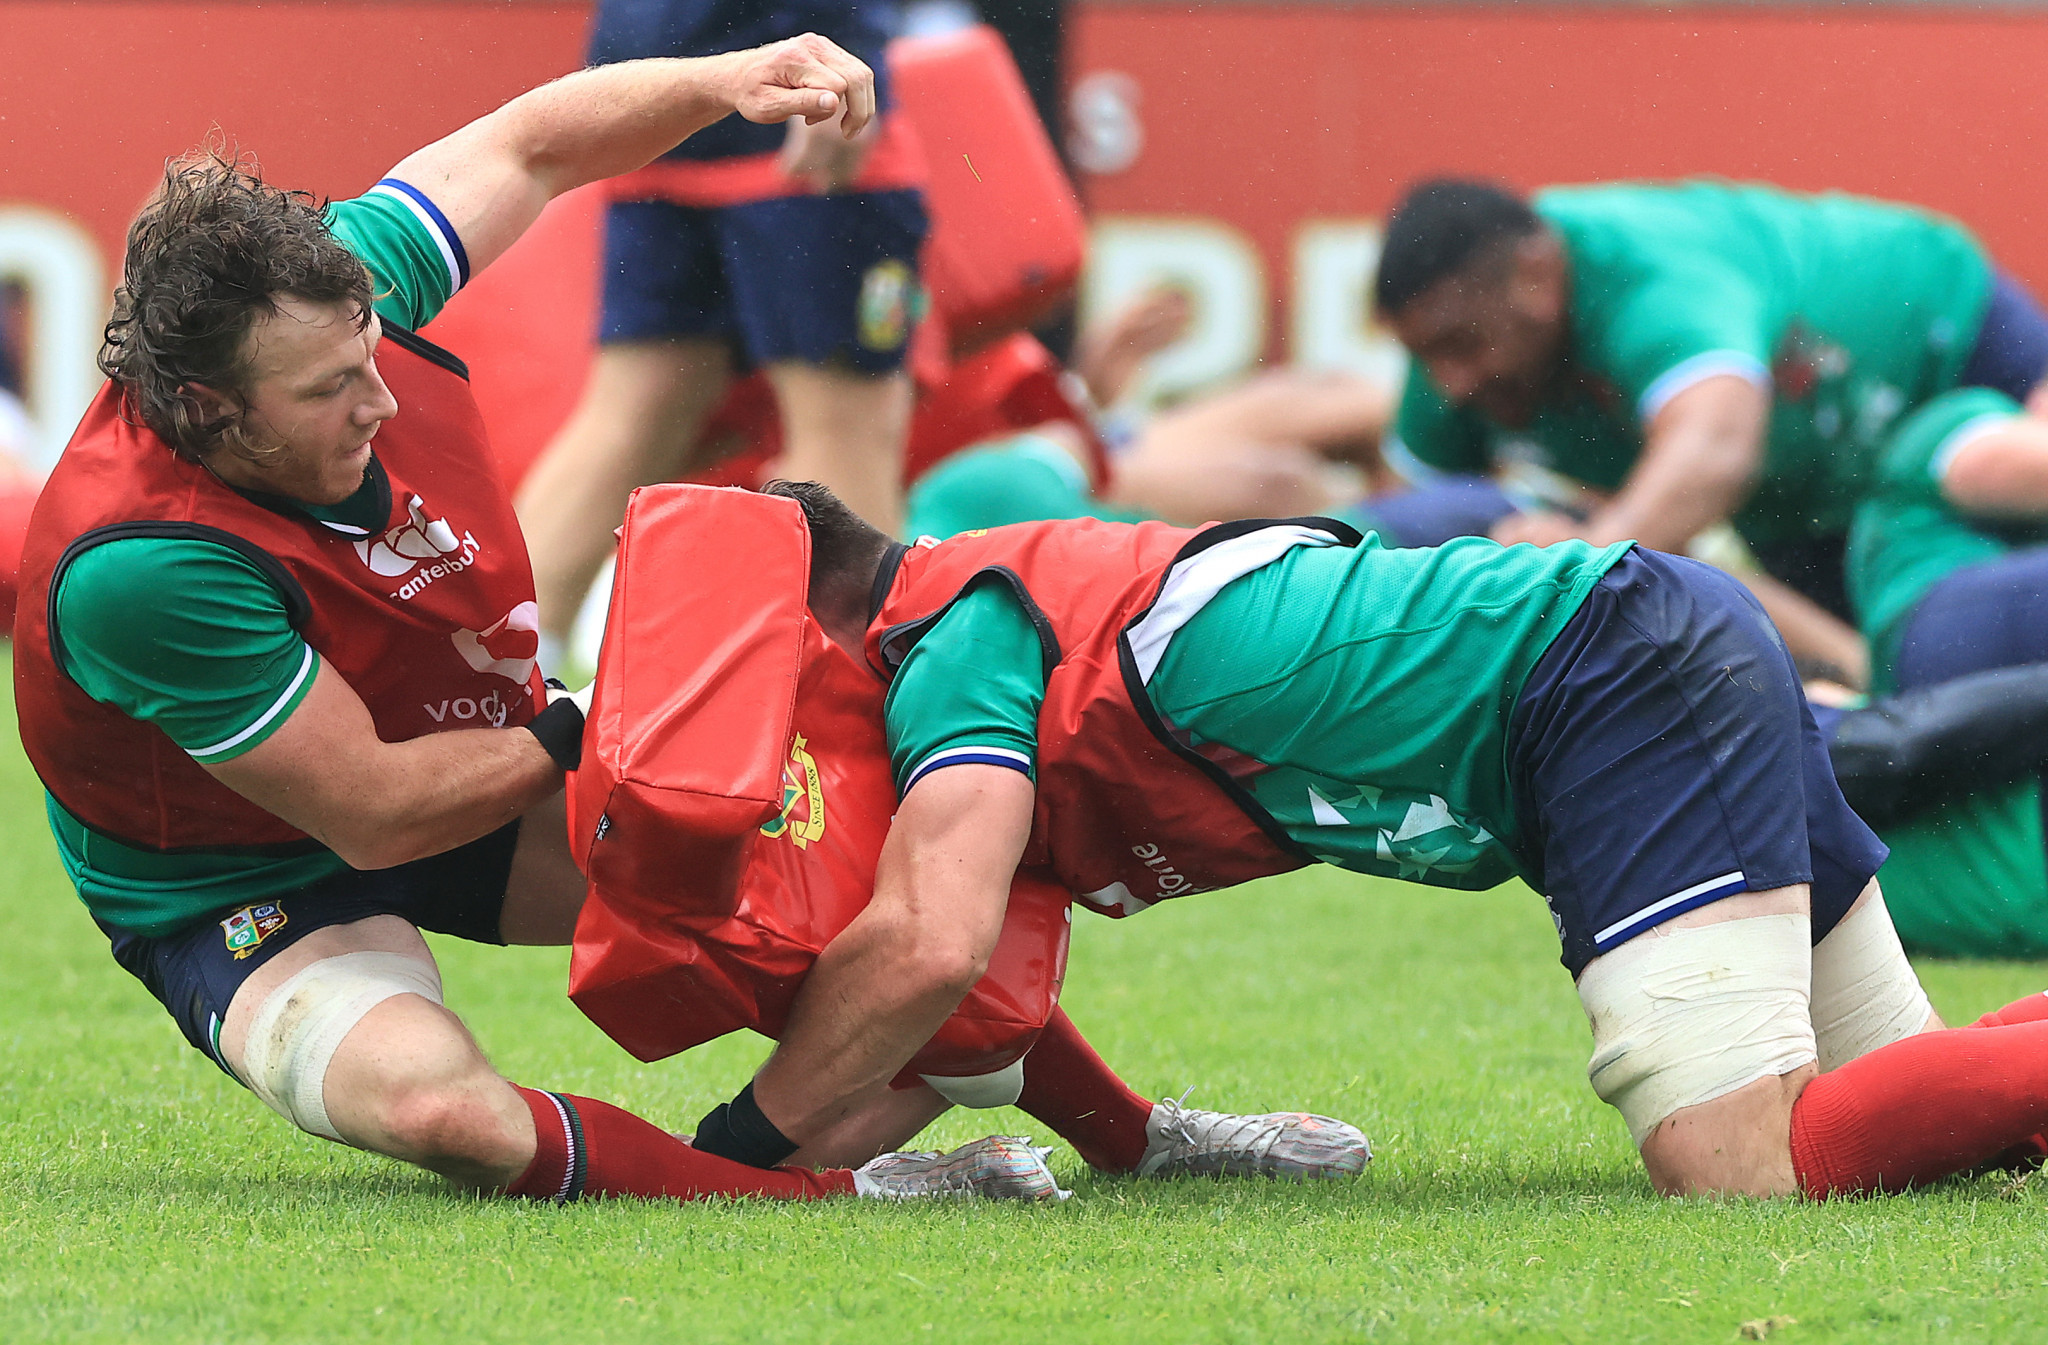 Full-contact training should not exceed 15 minutes per week, World Rugby guidelines say